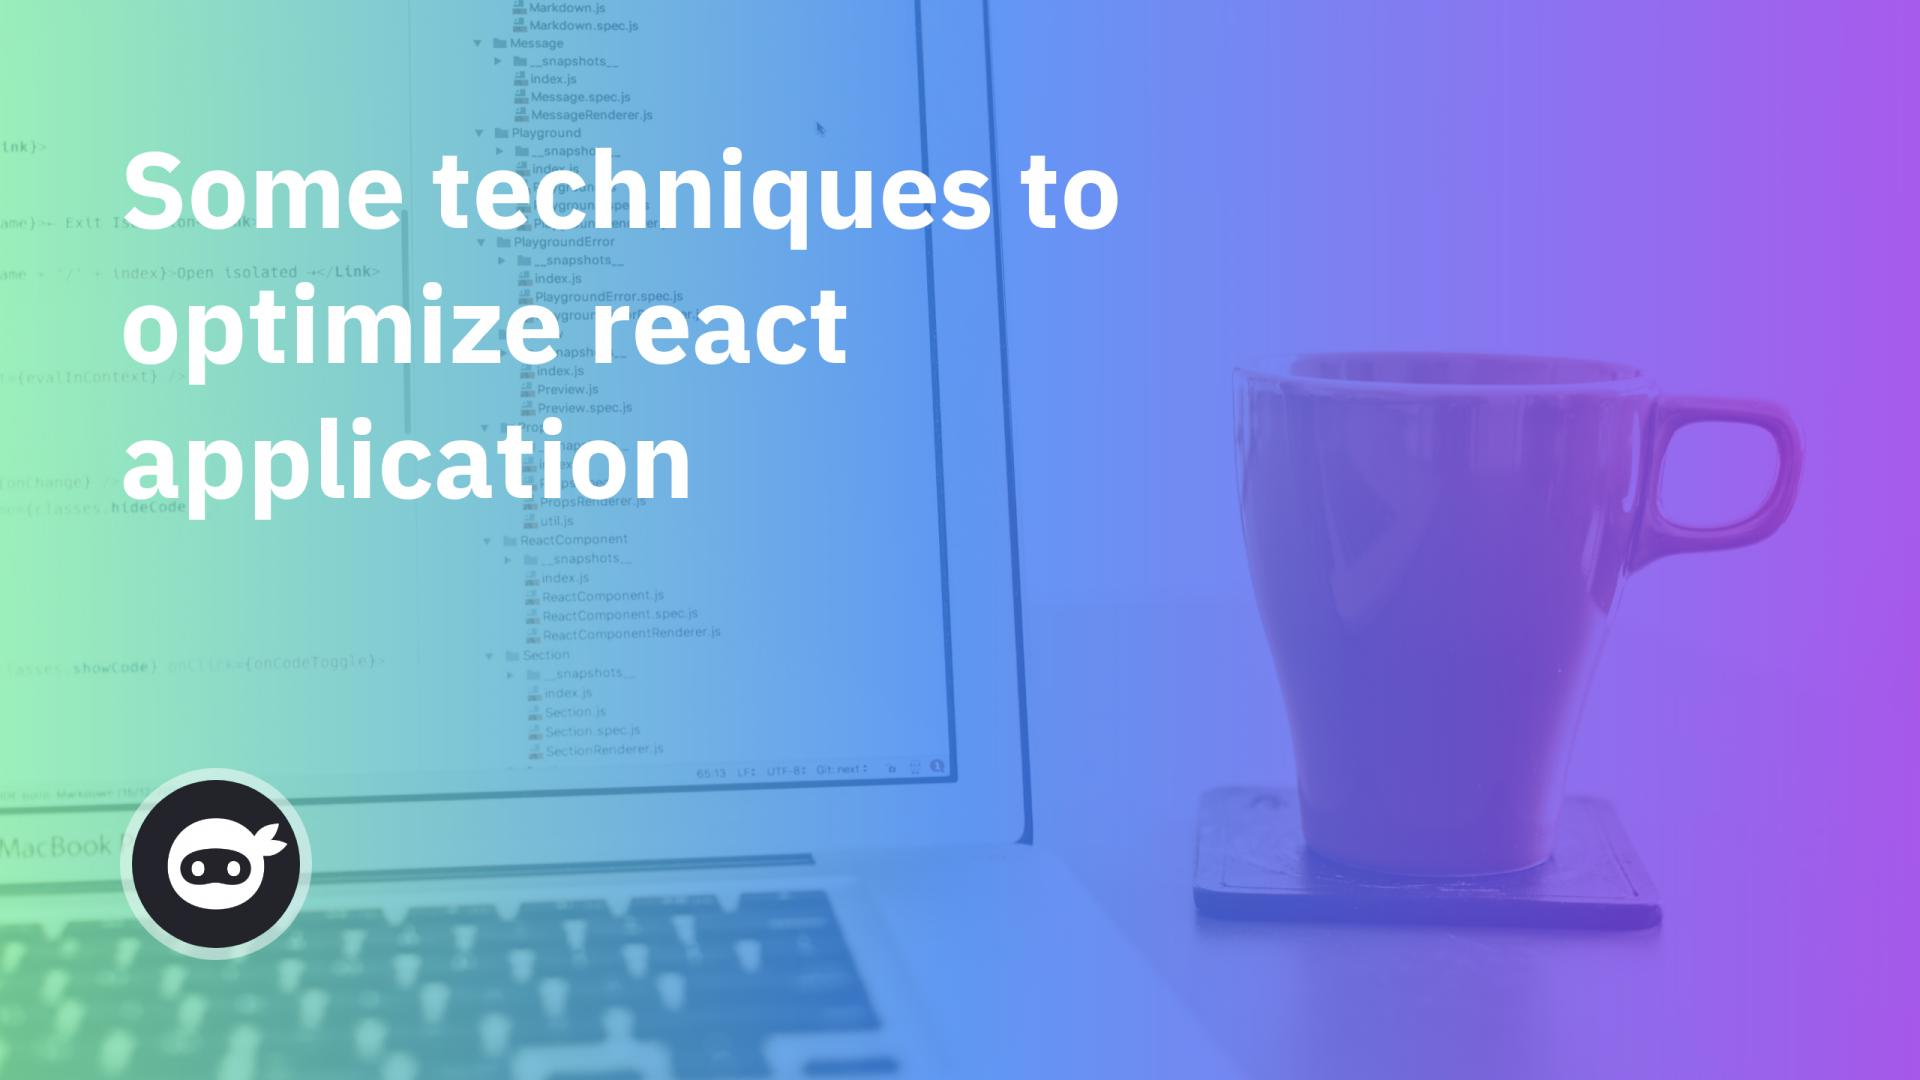 Some techniques to optimize react application